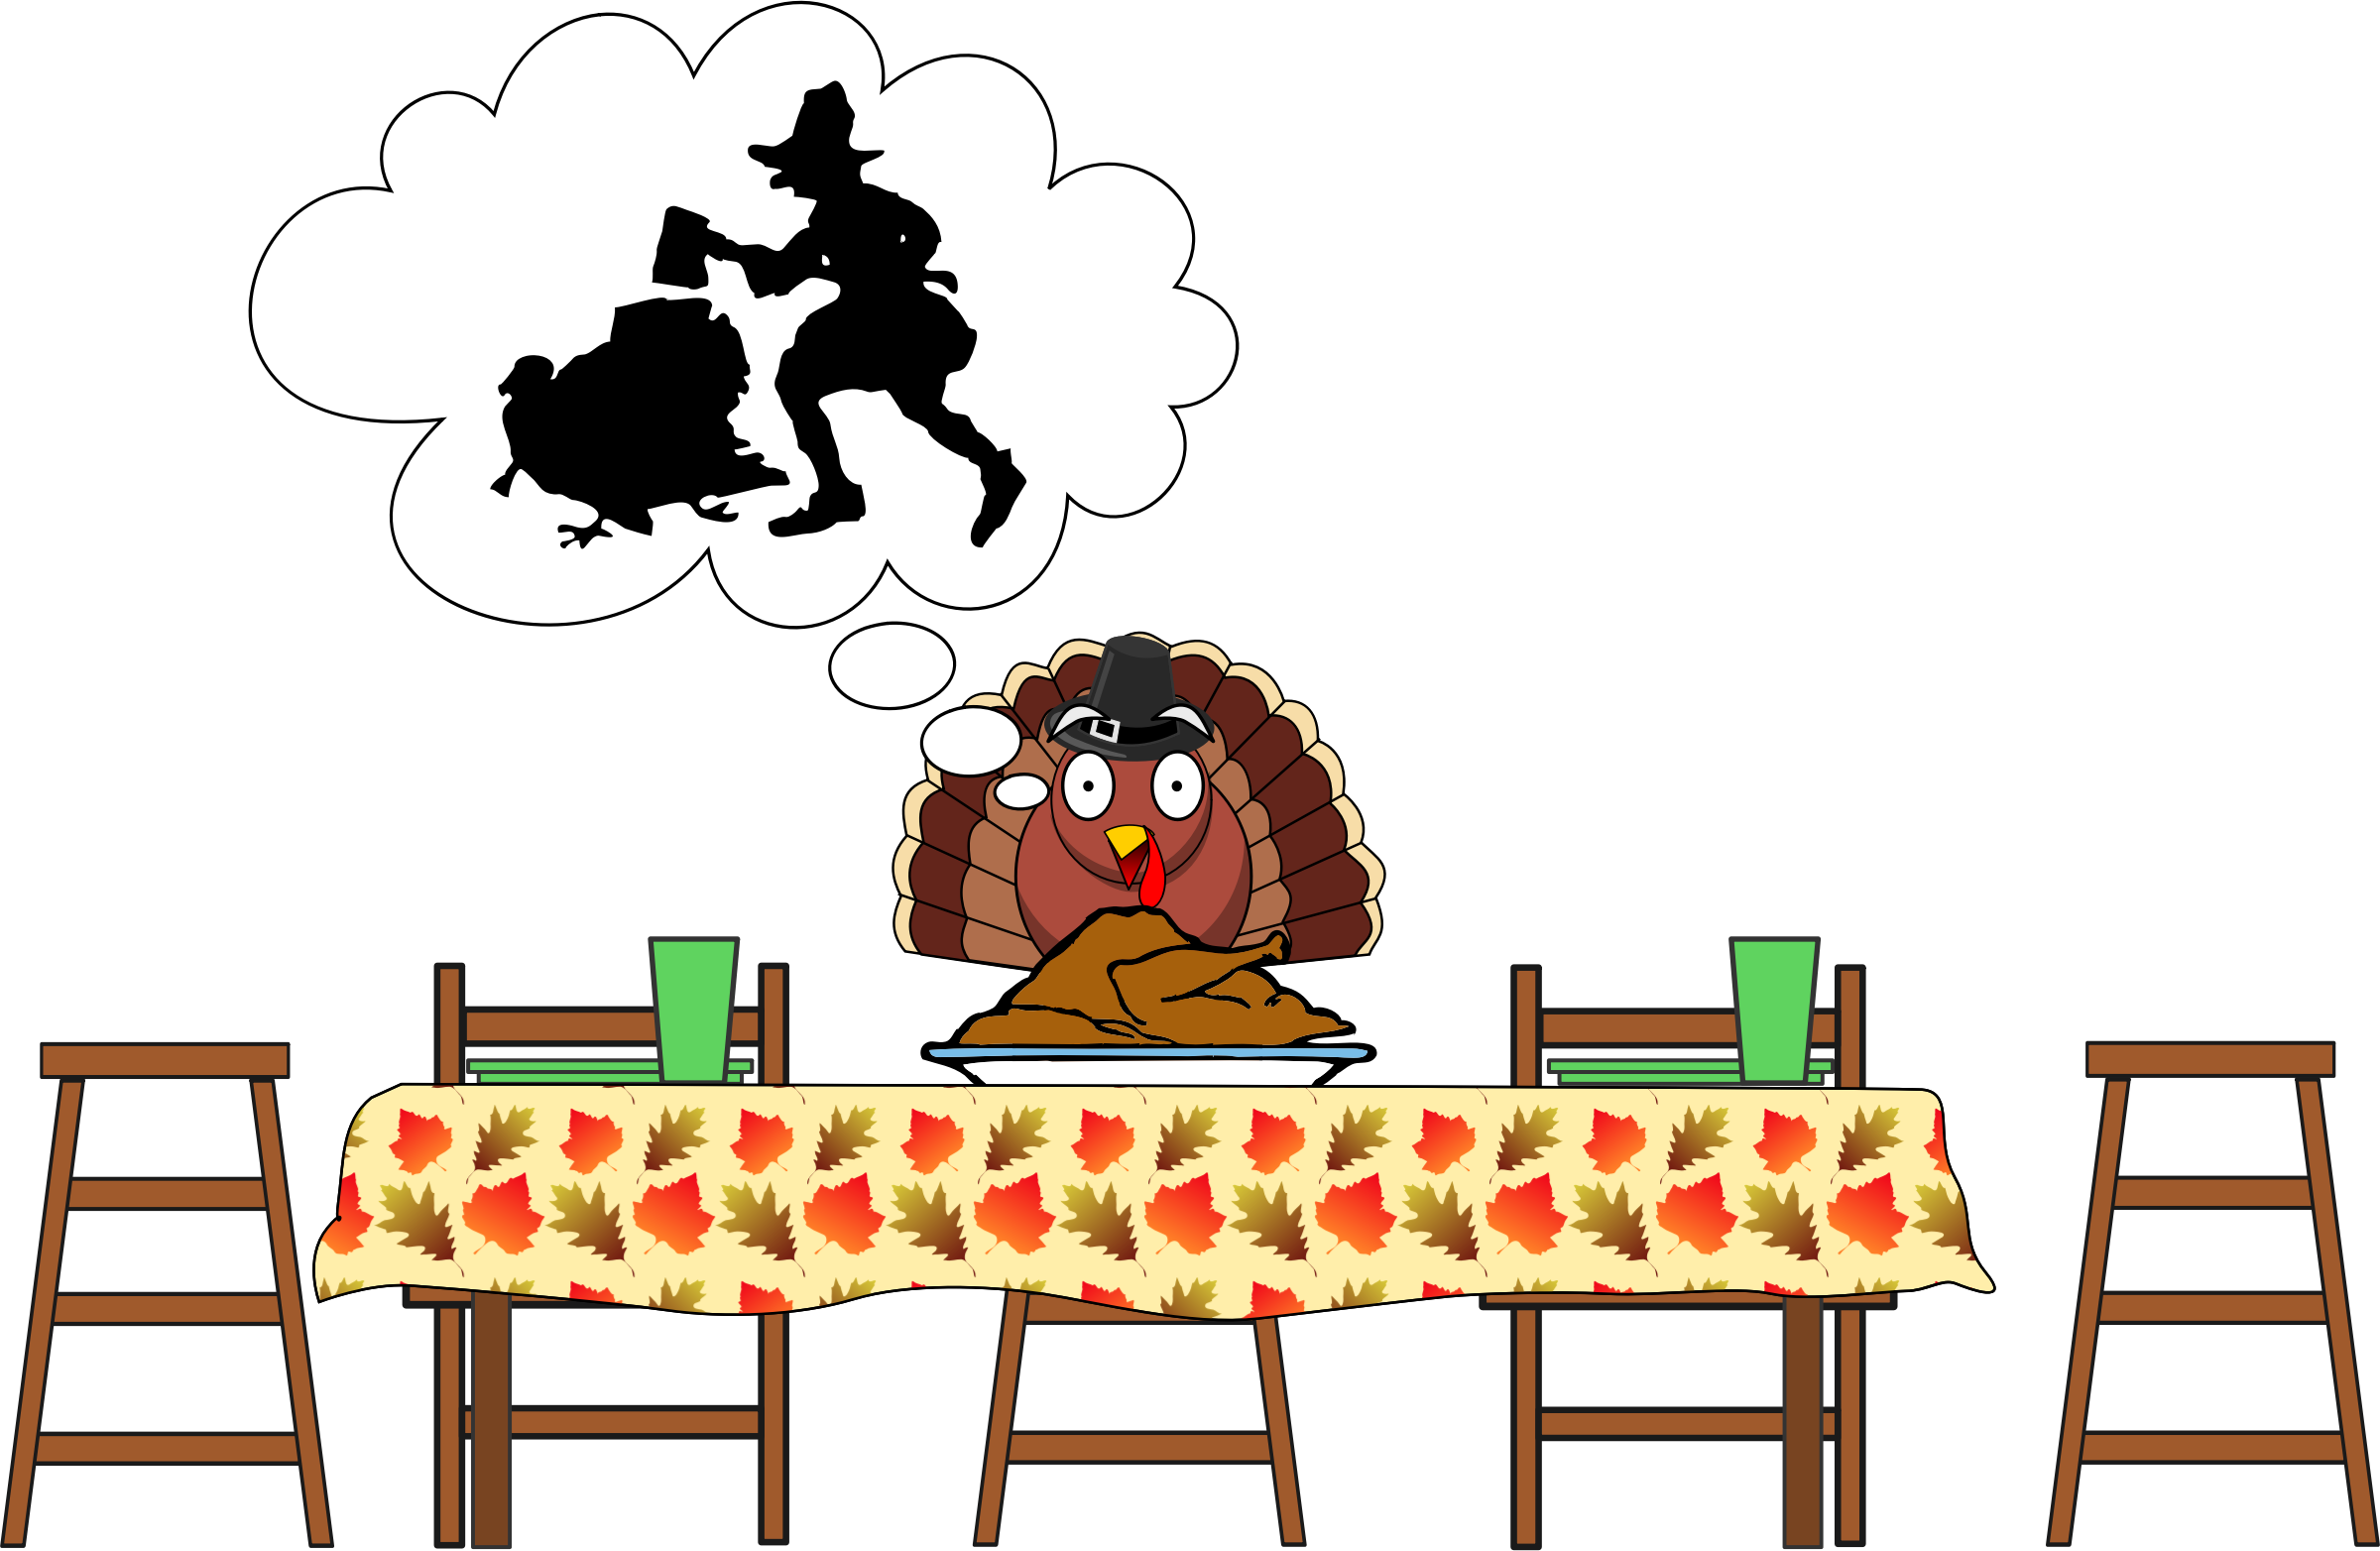 png royalty free Turkey scared big image. Clipart happy thanksgiving